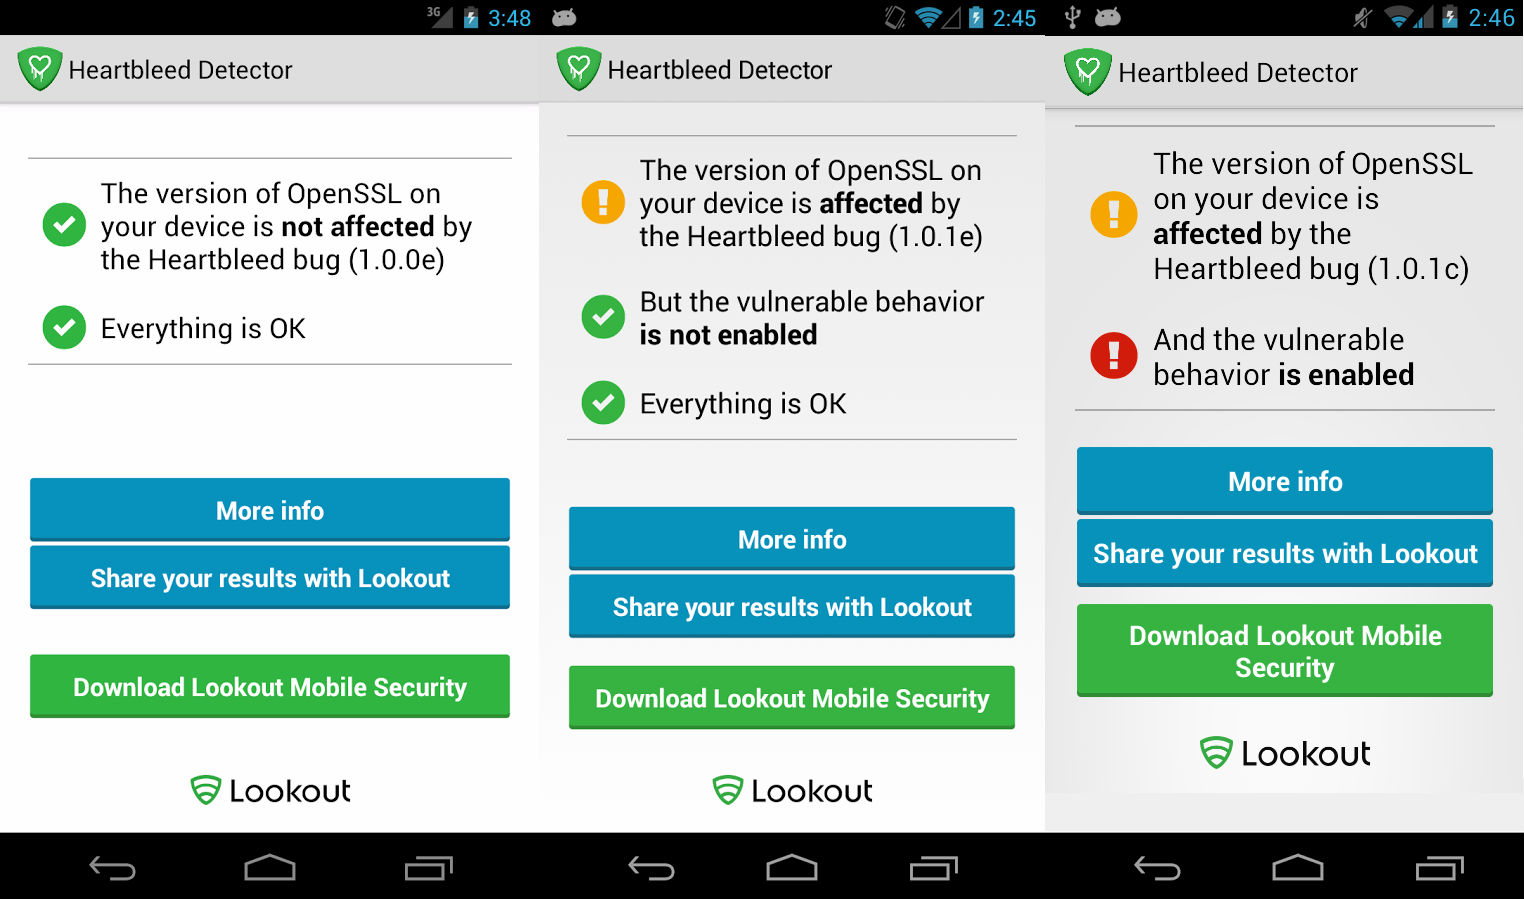 heartbleed detector app for android